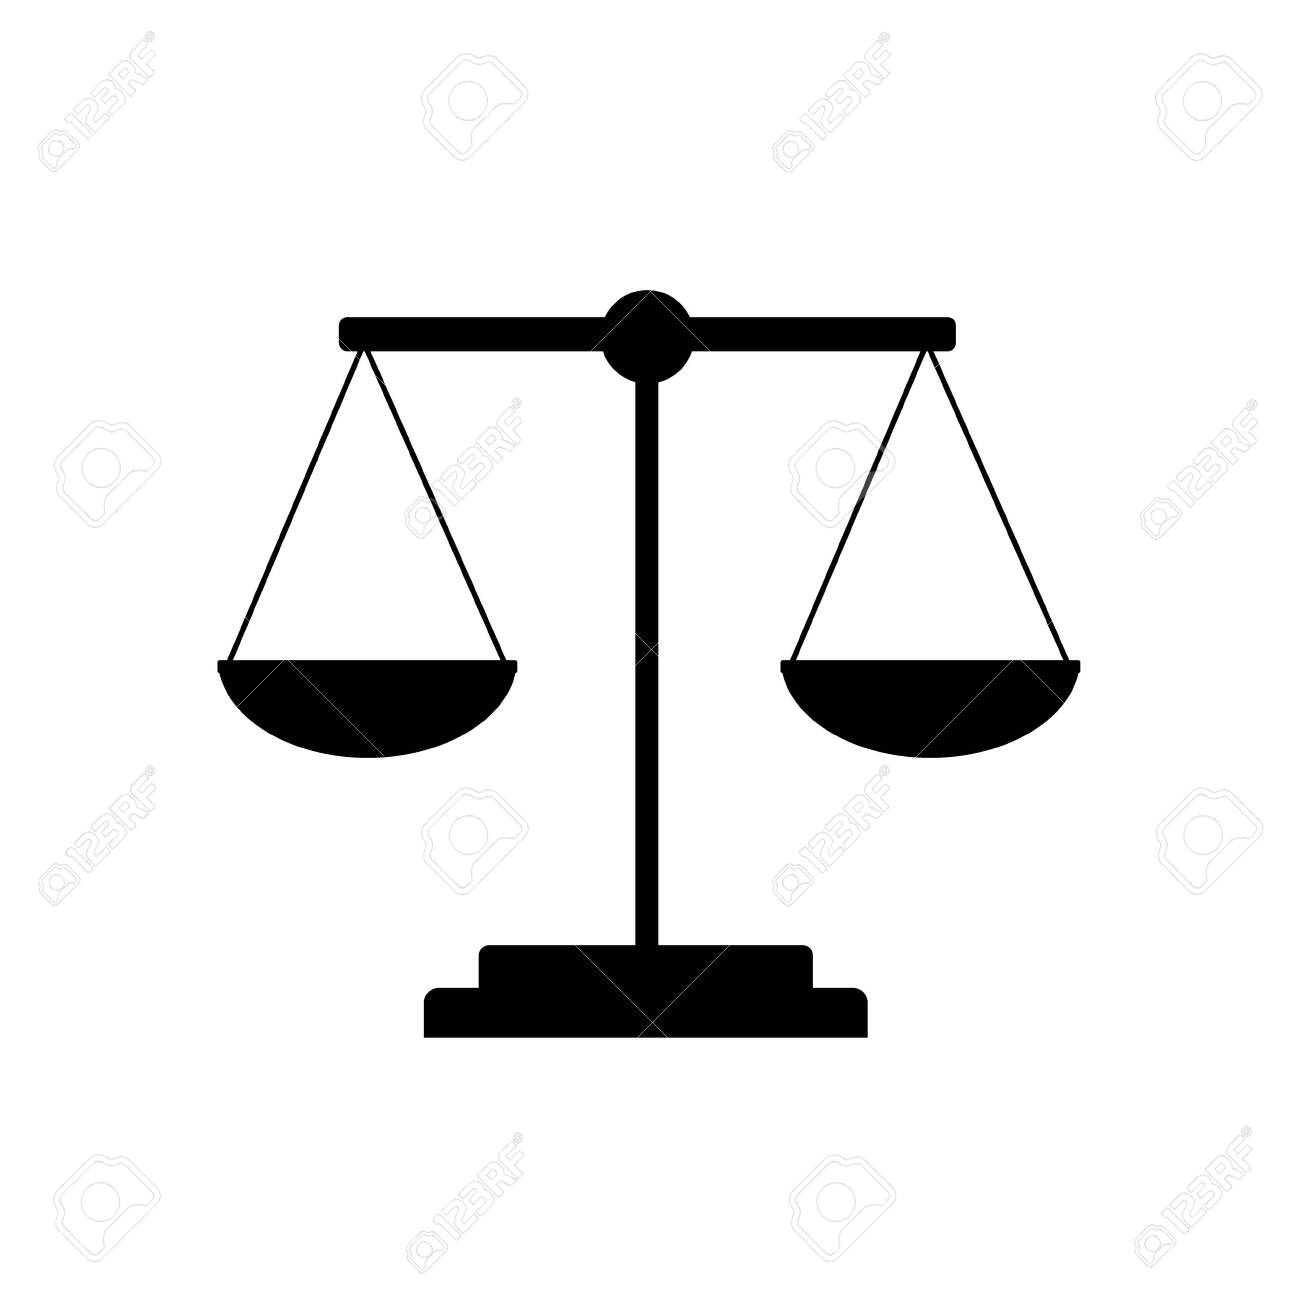 Scales, weighing tool, flat color vector illustration in black on white background, icon, design, decoration - 151999439